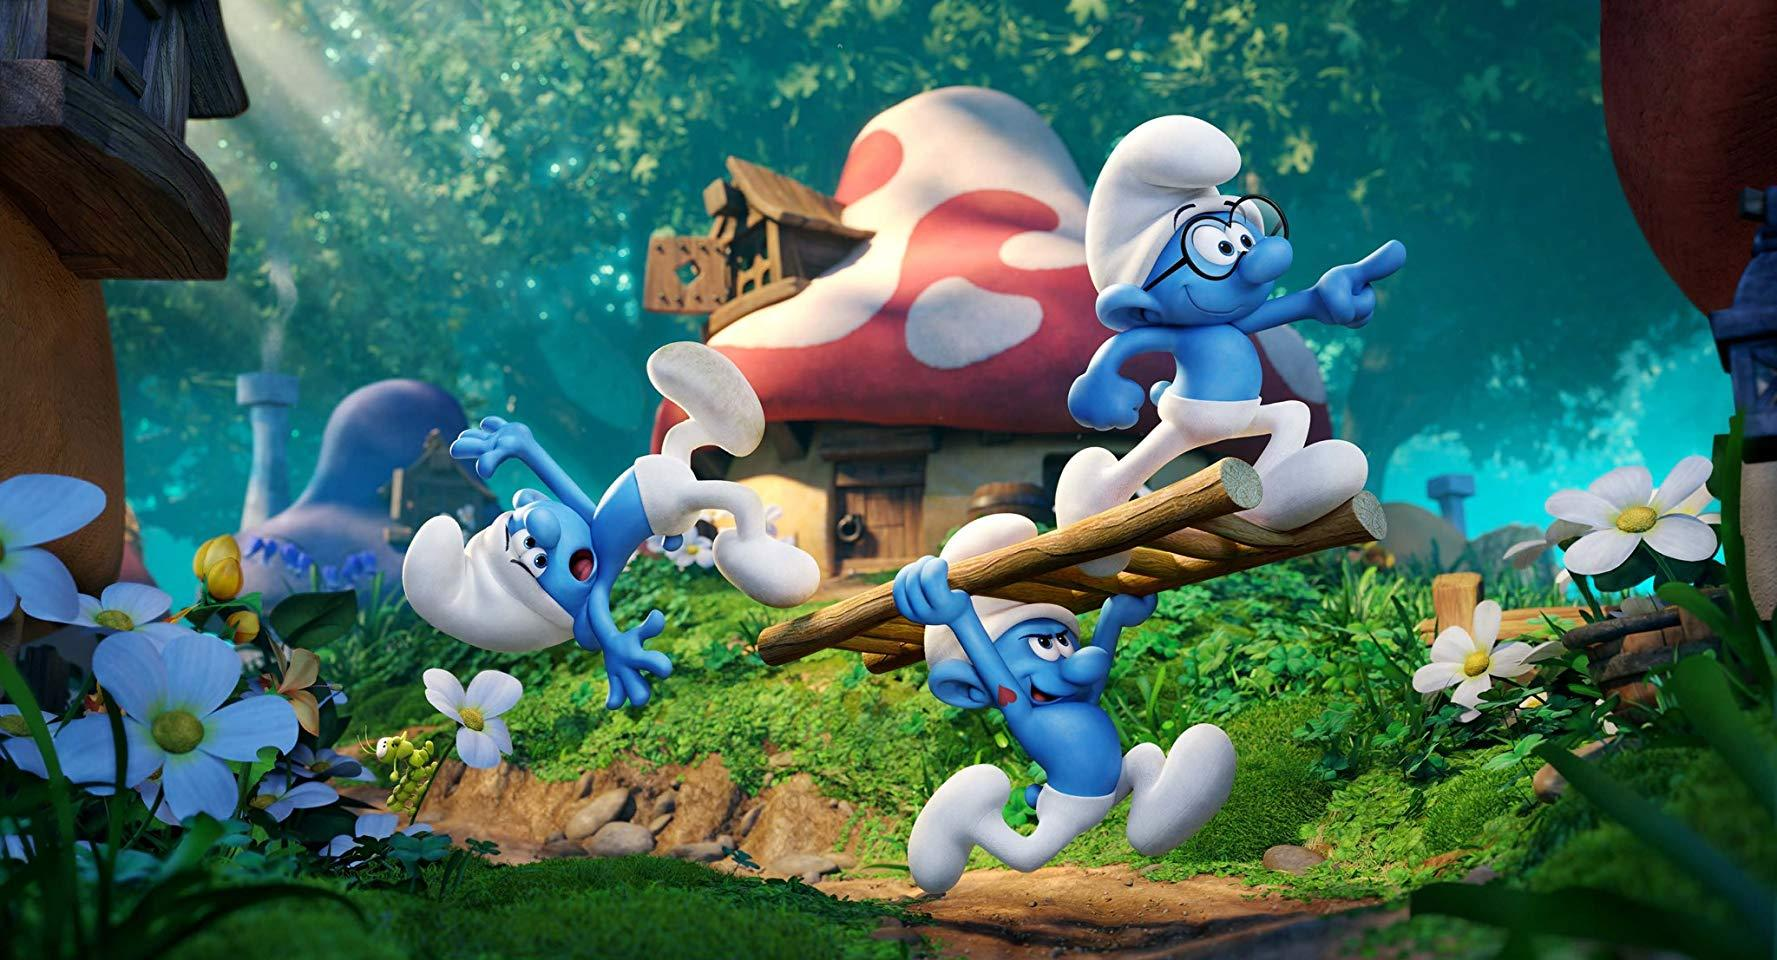 مشاهدة فيلم Smurfs: The Lost Village (2017) مترجم HD اون لاين